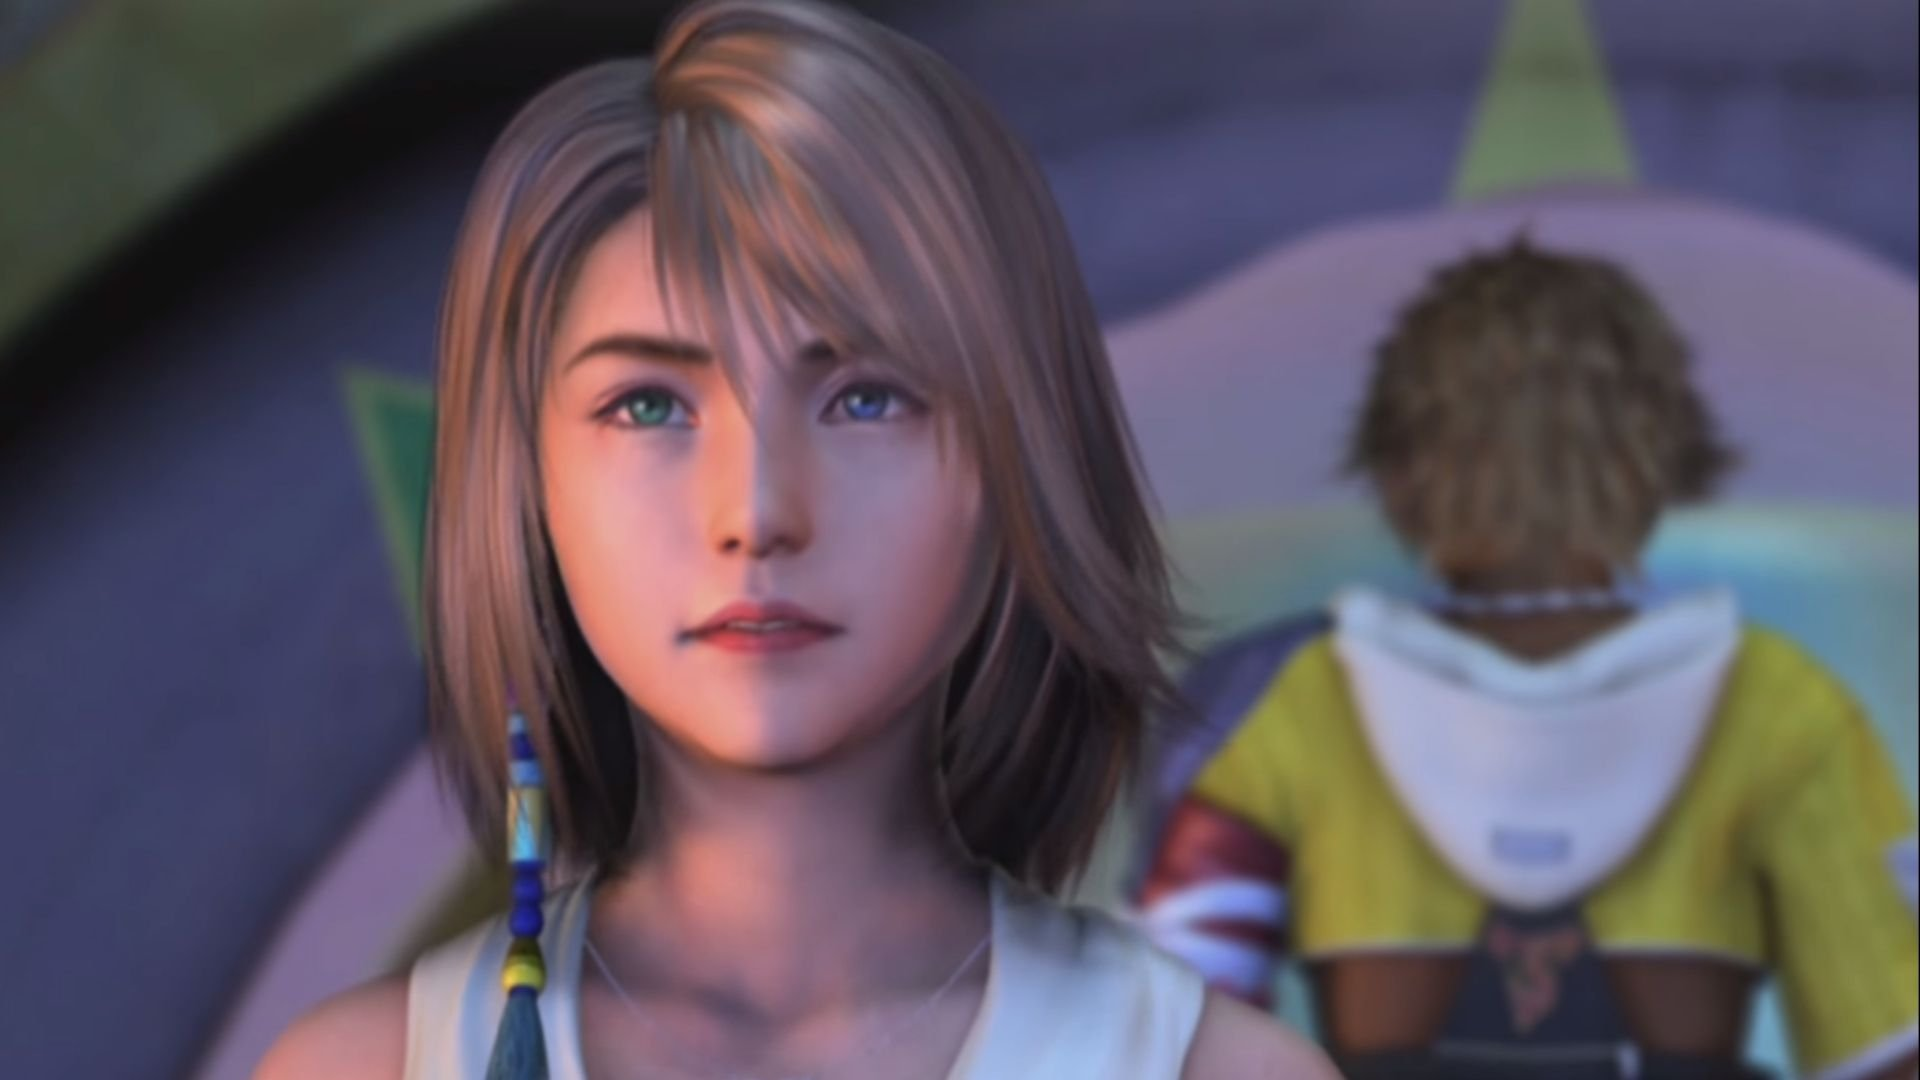 Yuna, a main character in Final Fantasy X